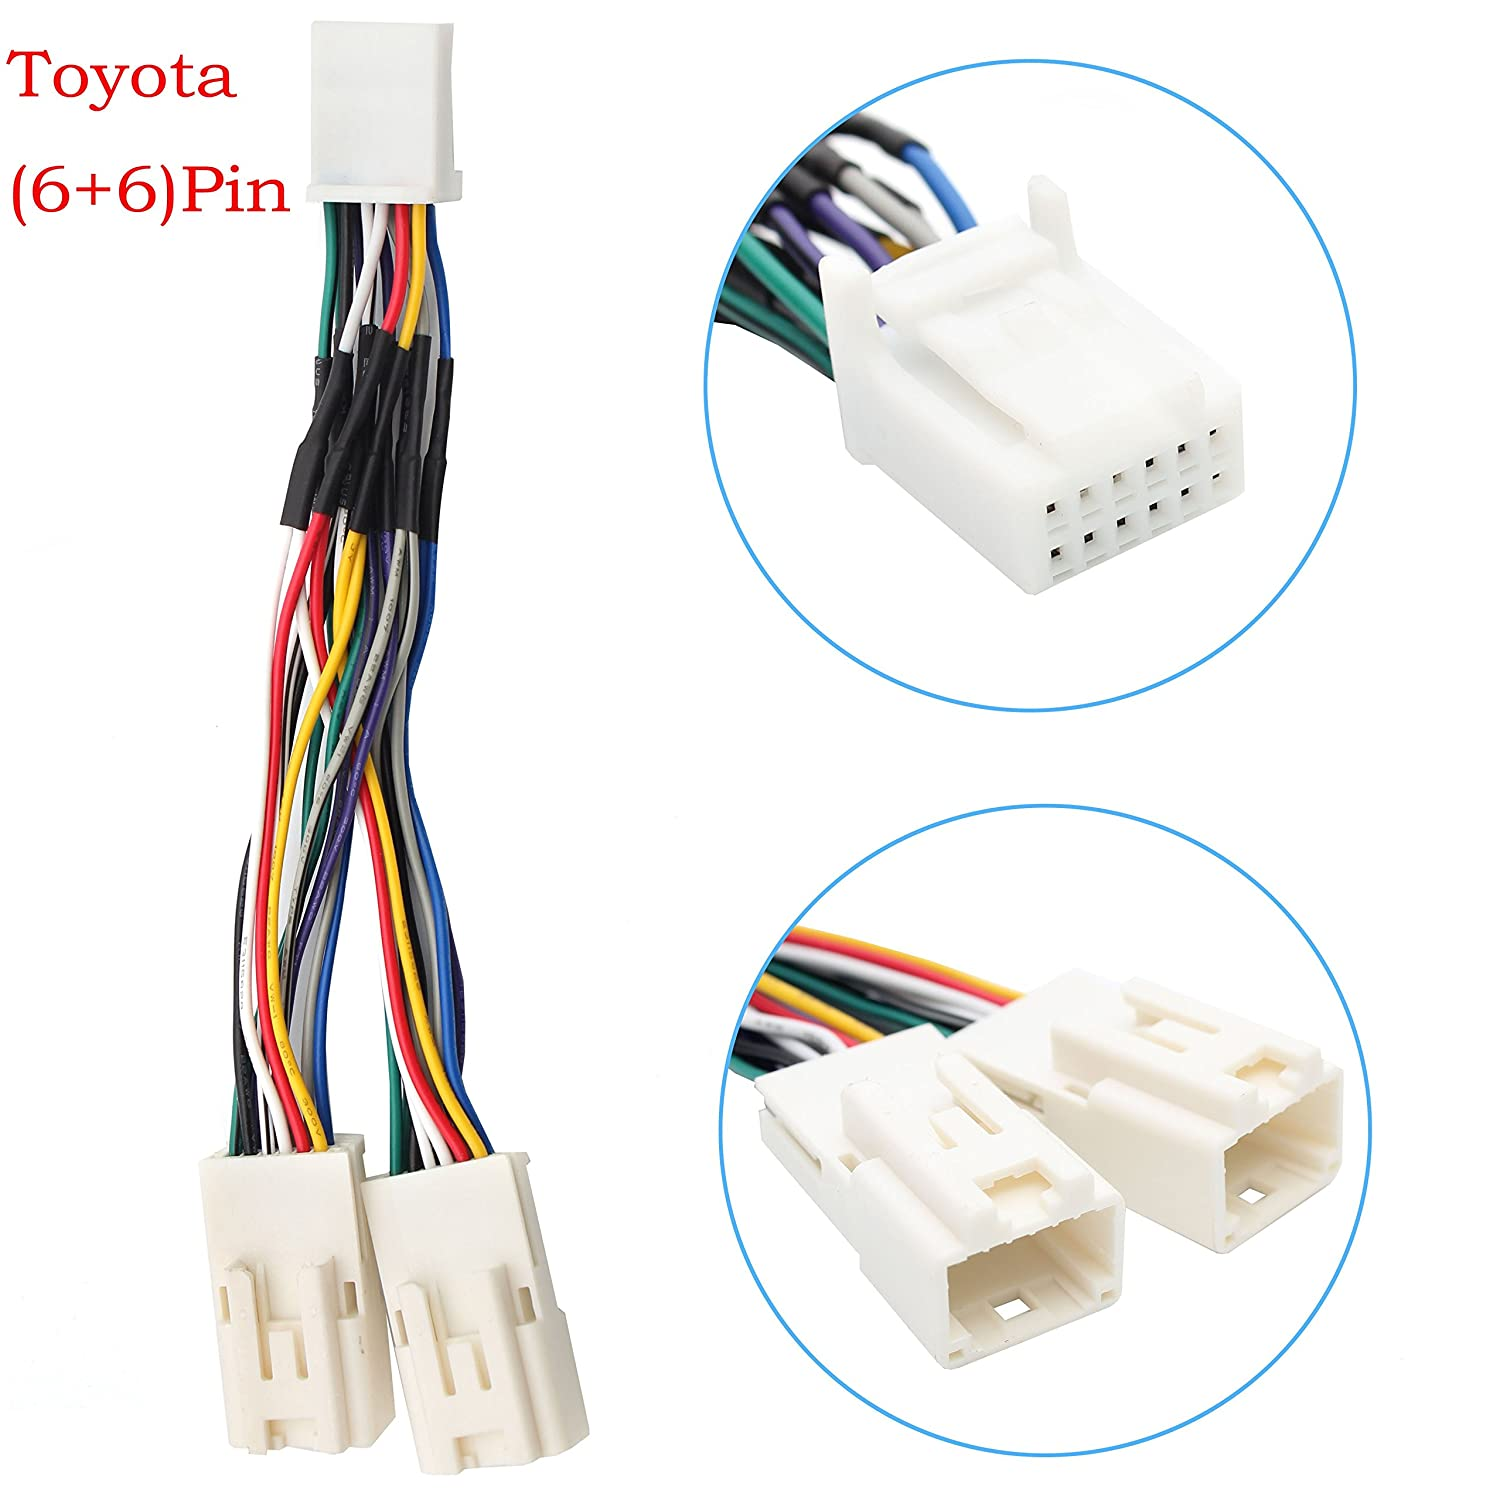 6+6 Pin 2003-2014 Toyota Camry Corolla Highlander RAV4 Yaris Auxillary Adapter,Yomikoo Y Cable Radio Wiring Harness for USB Adapter CD Changer Navigation Device Fit for Toyota